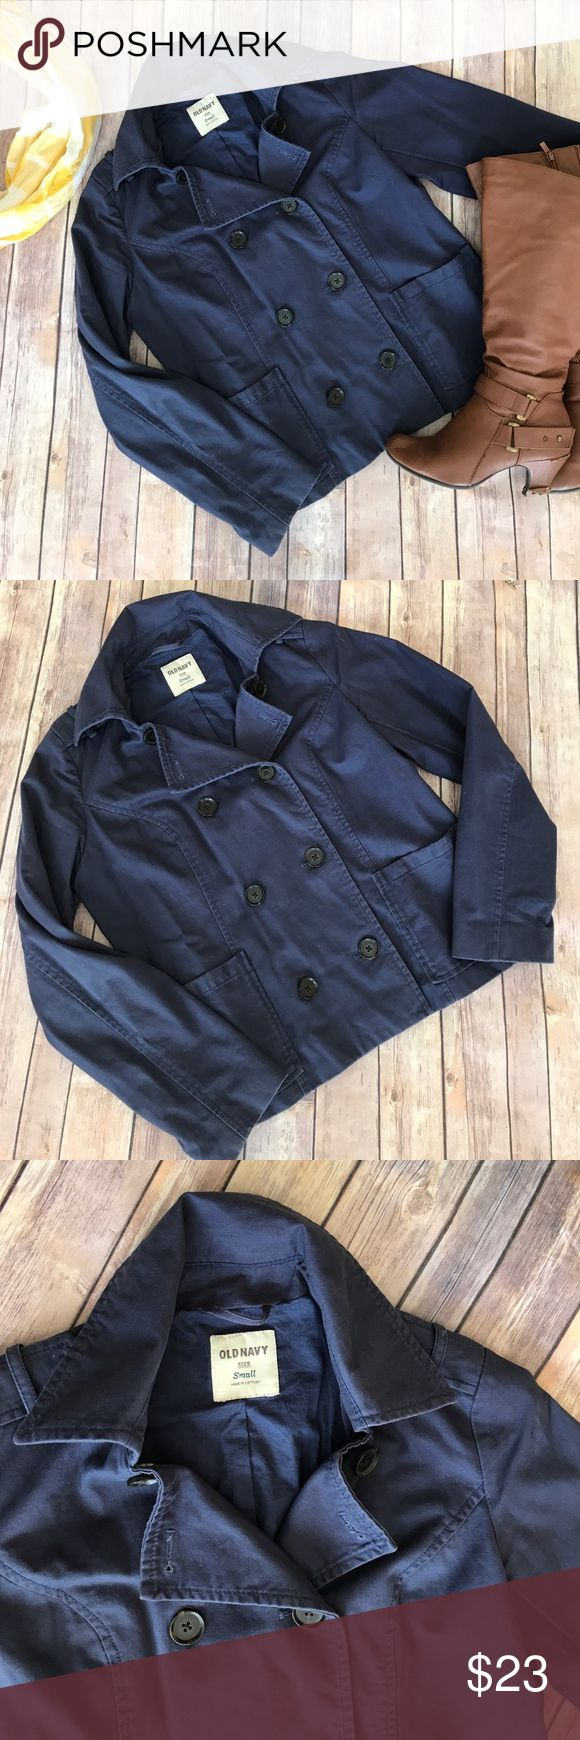 {Old Navy} Navy Blue Double Breasted Light Jacket Excellent condition cotton pea coat. Light weight and perfect for fall and early spring! Old Navy Jackets & Coats Pea Coats